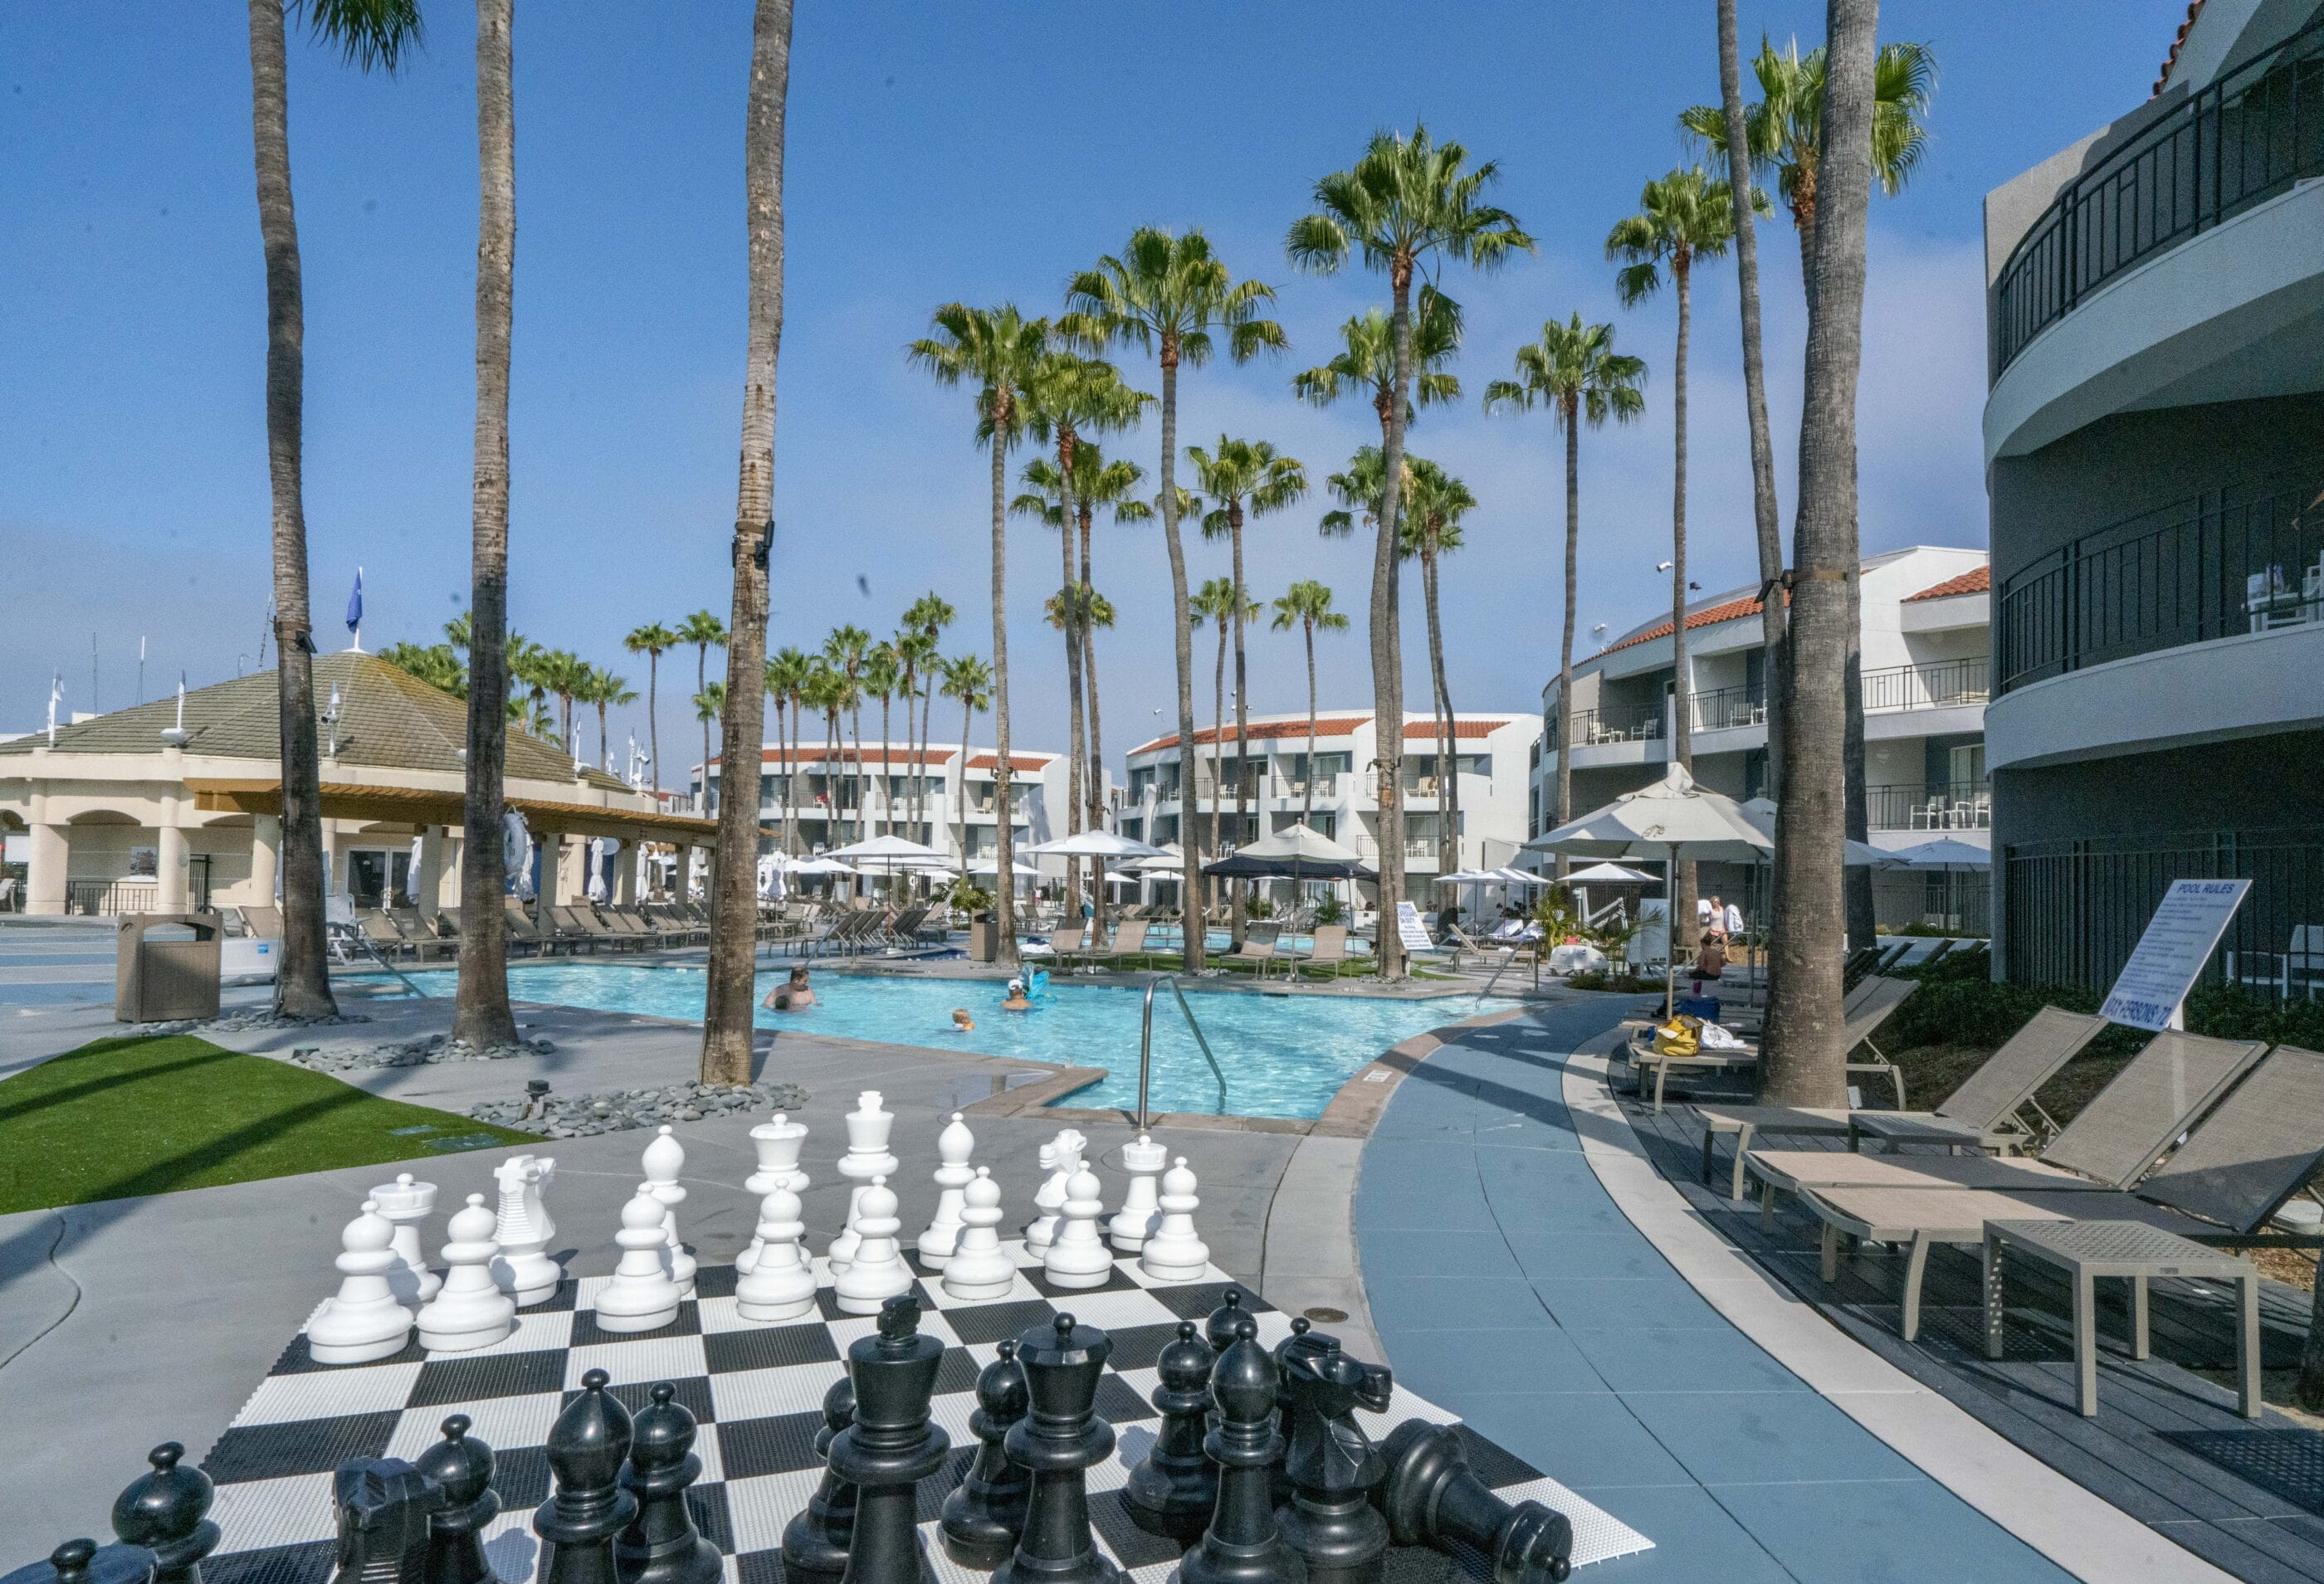 One of the three outdoor swimming pools with a large chess set near the lounge chairs.